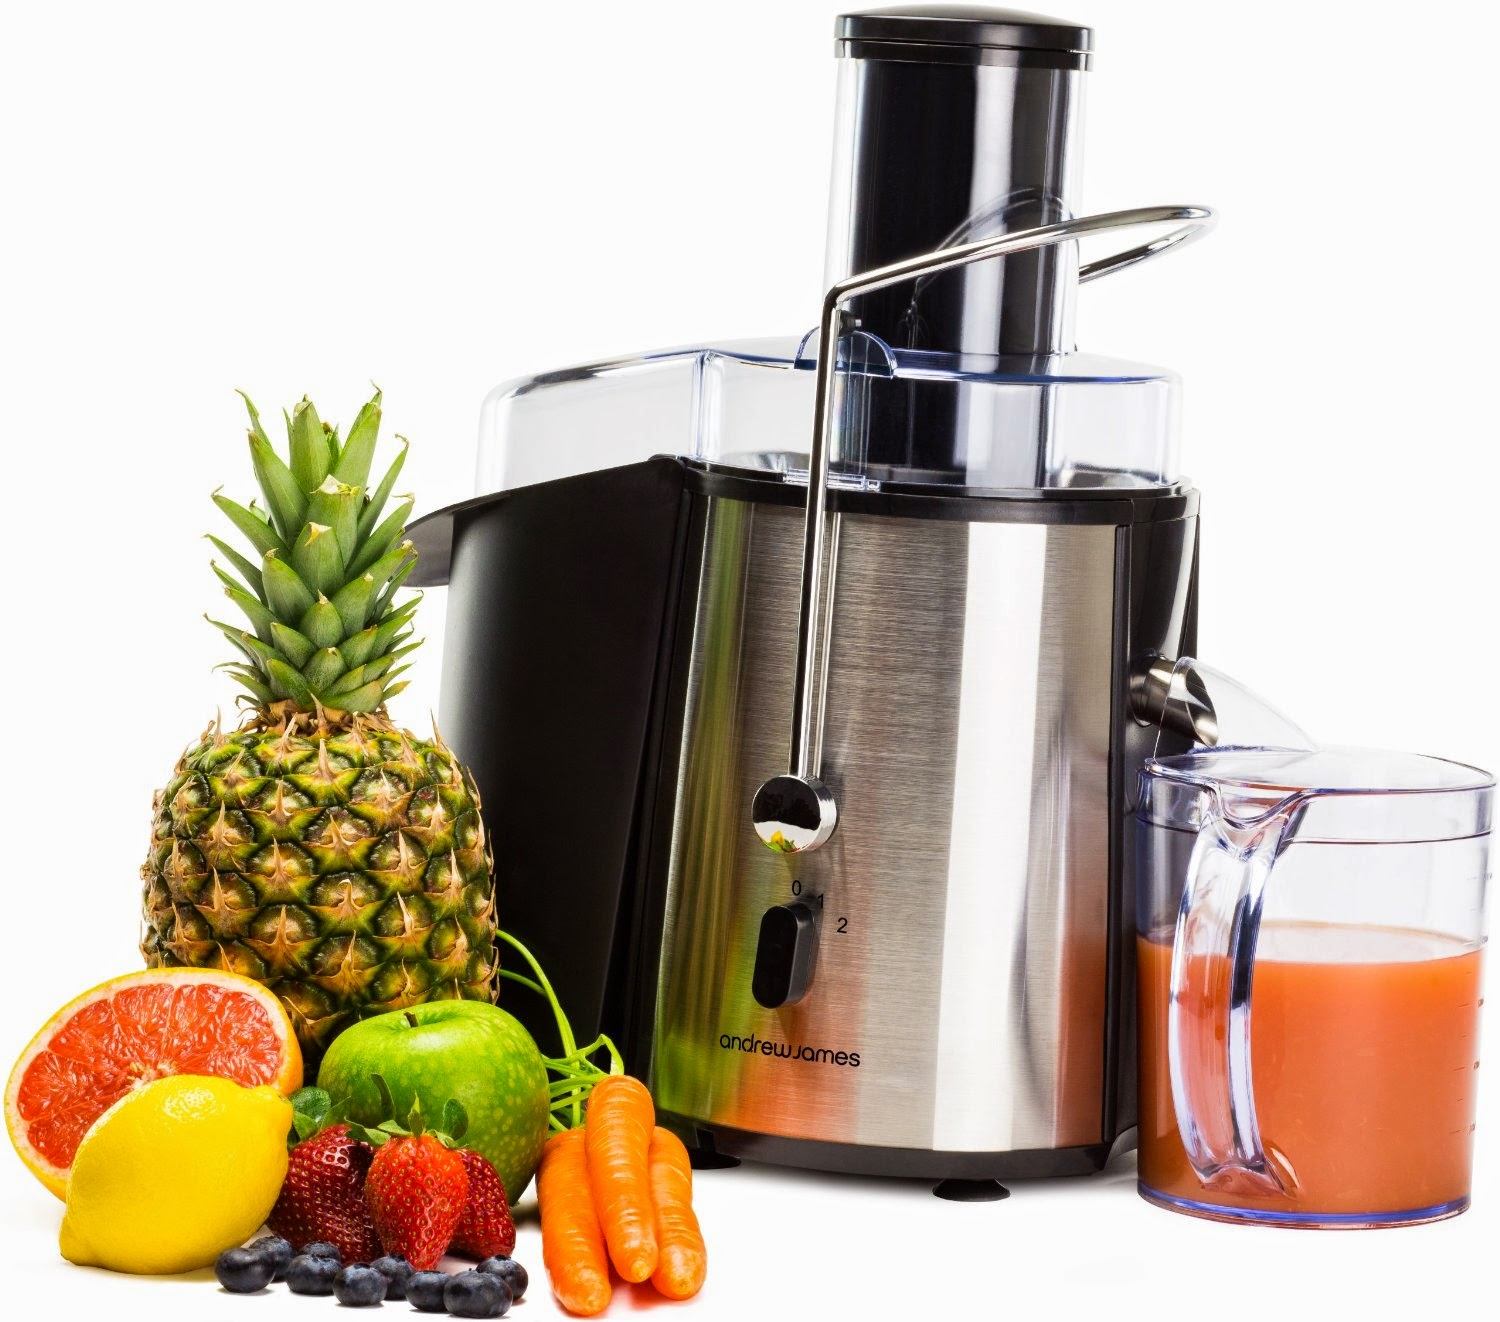 Win a power fruit juicer with the Weight Watchers #StepintoSummer campaign